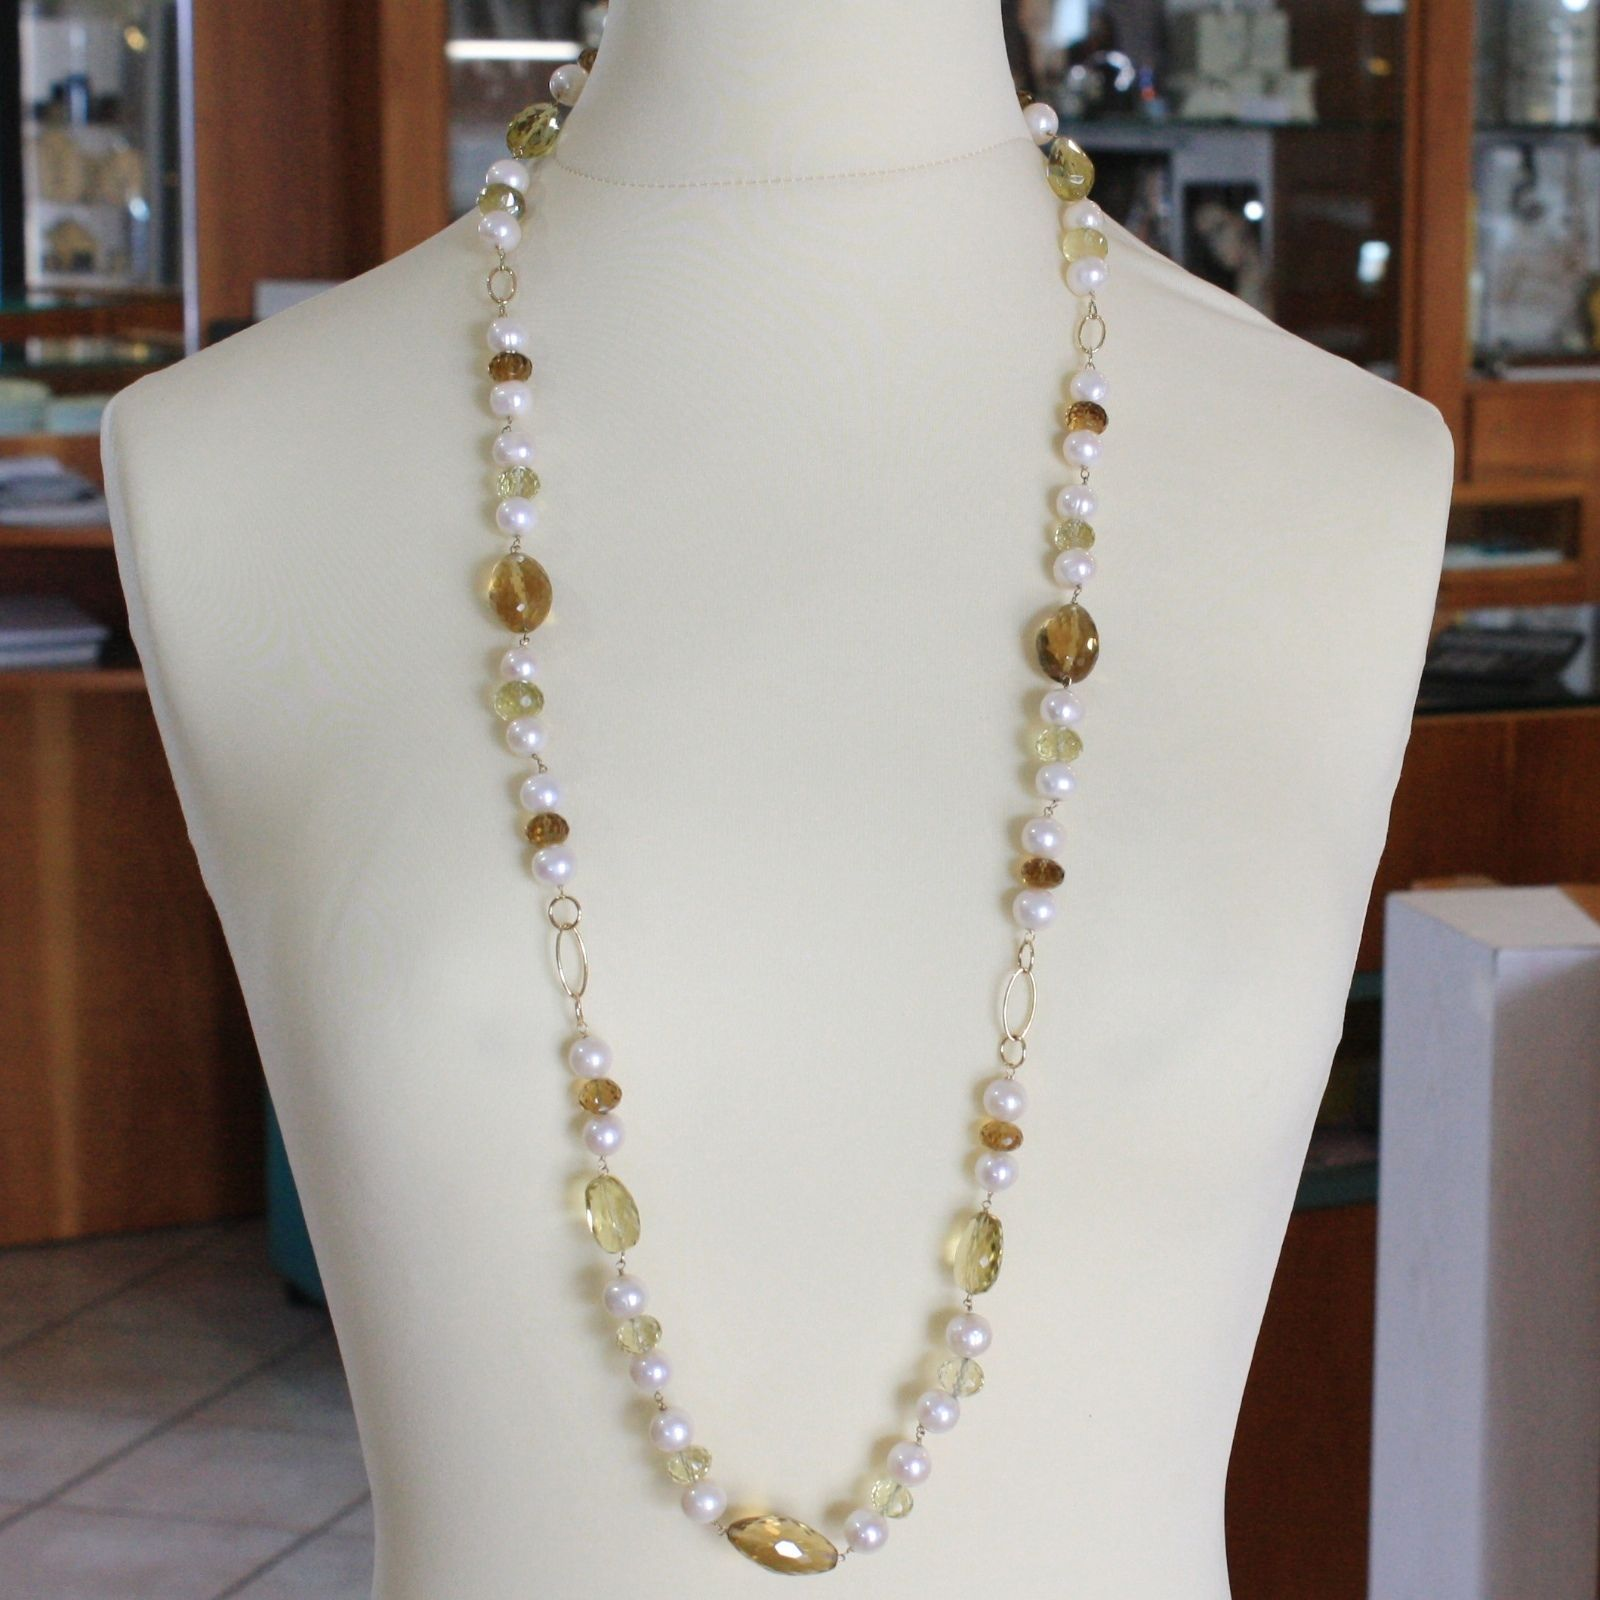 18K YELLOW GOLD LONG NECKLACE BIG LEMON BEER QUARTZ, PEARL, 90 CM, MADE IN ITALY